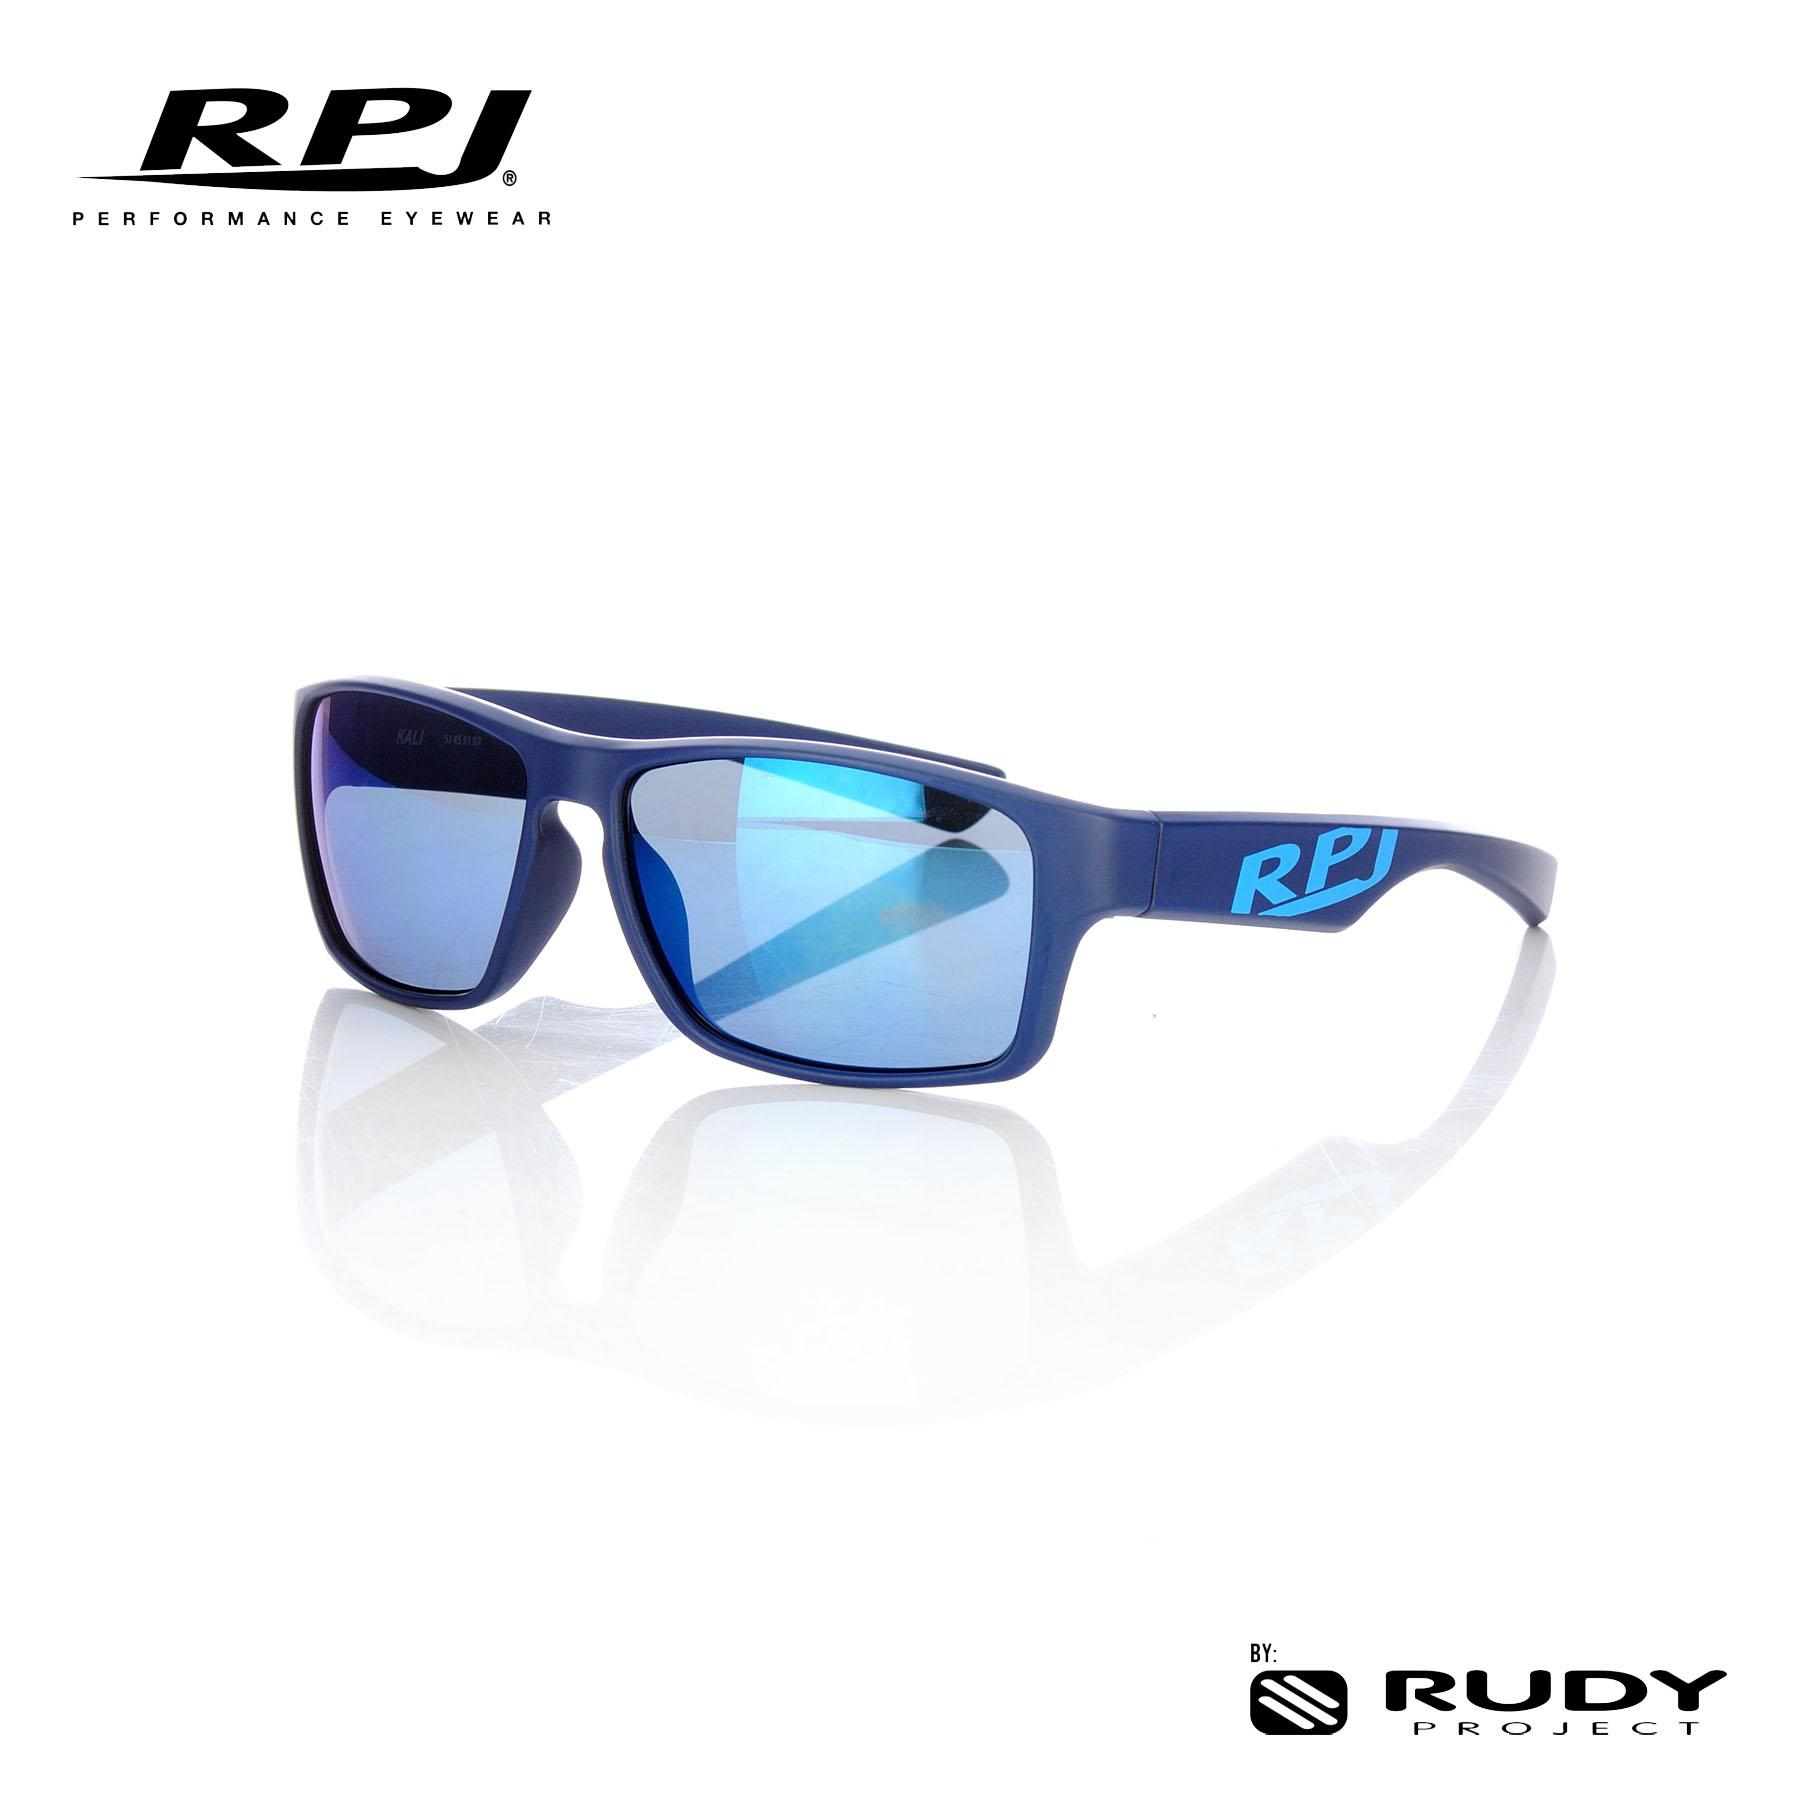 d3dc87727ed43 Rudy Project Philippines  Rudy Project price list - Rudy Project ...